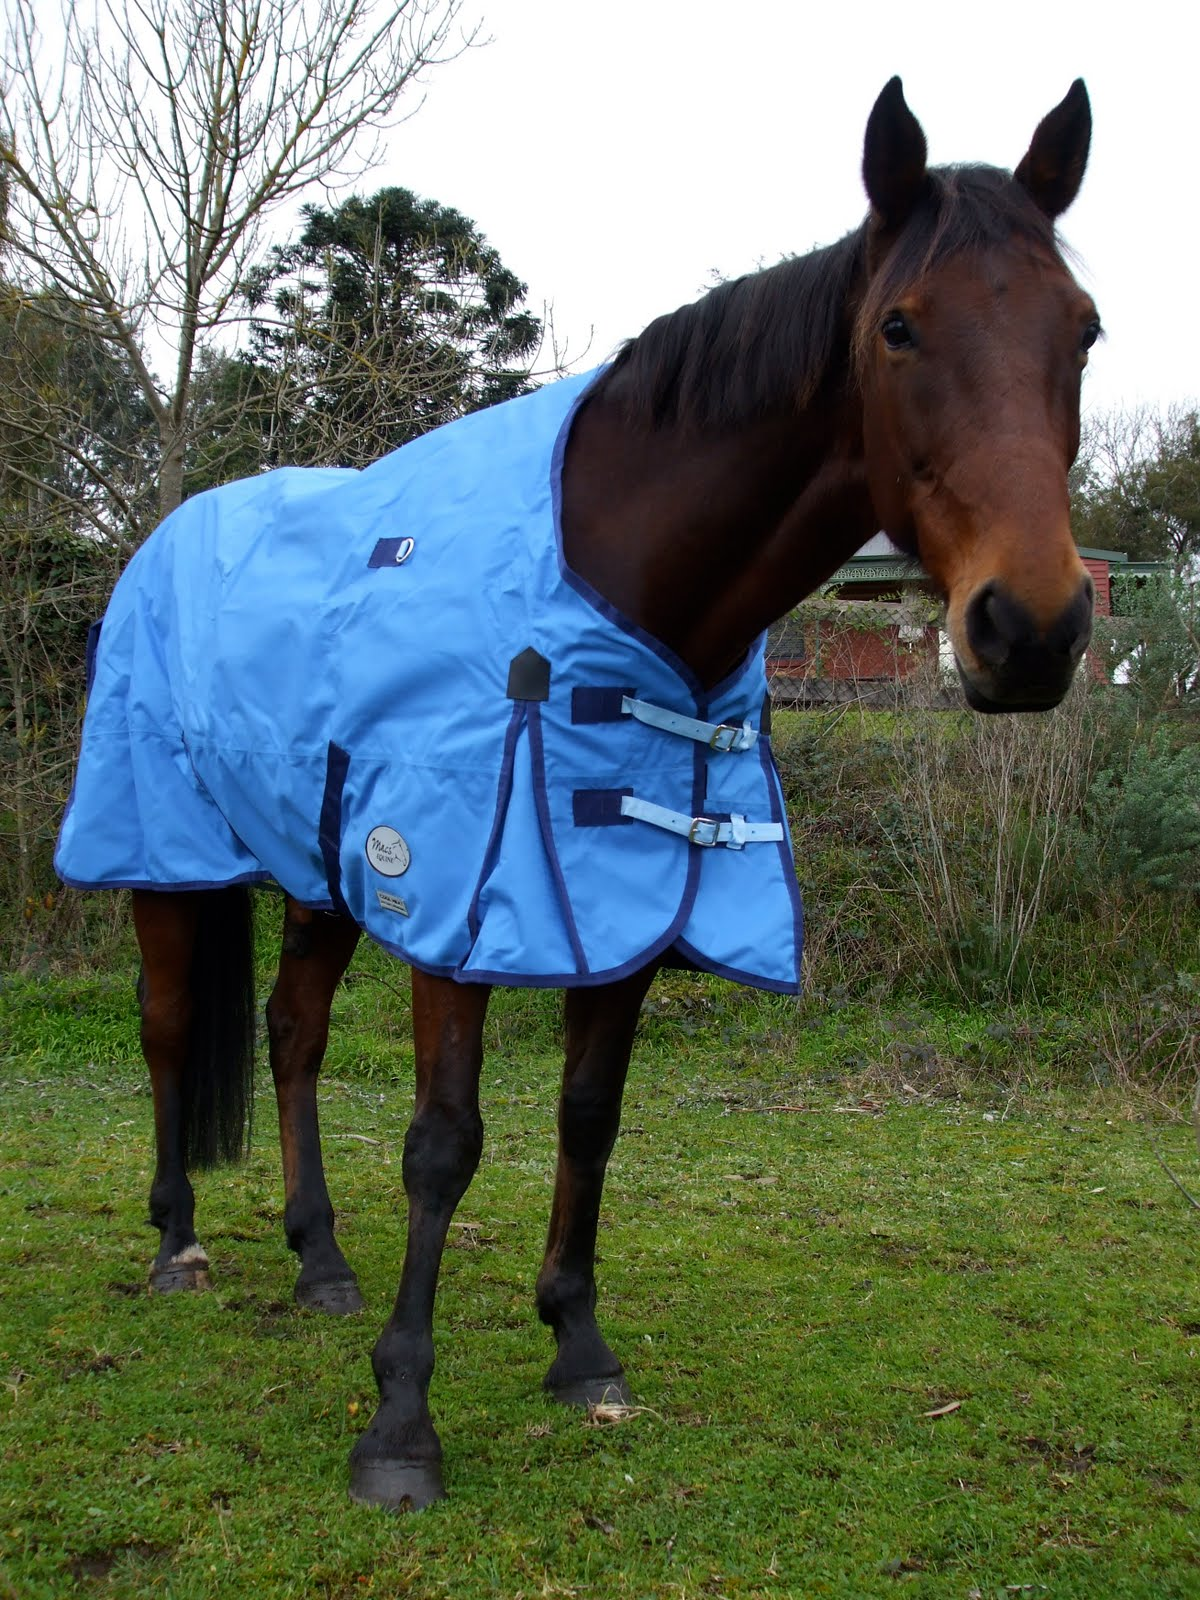 Macs Equine Cool Heat Rug Review